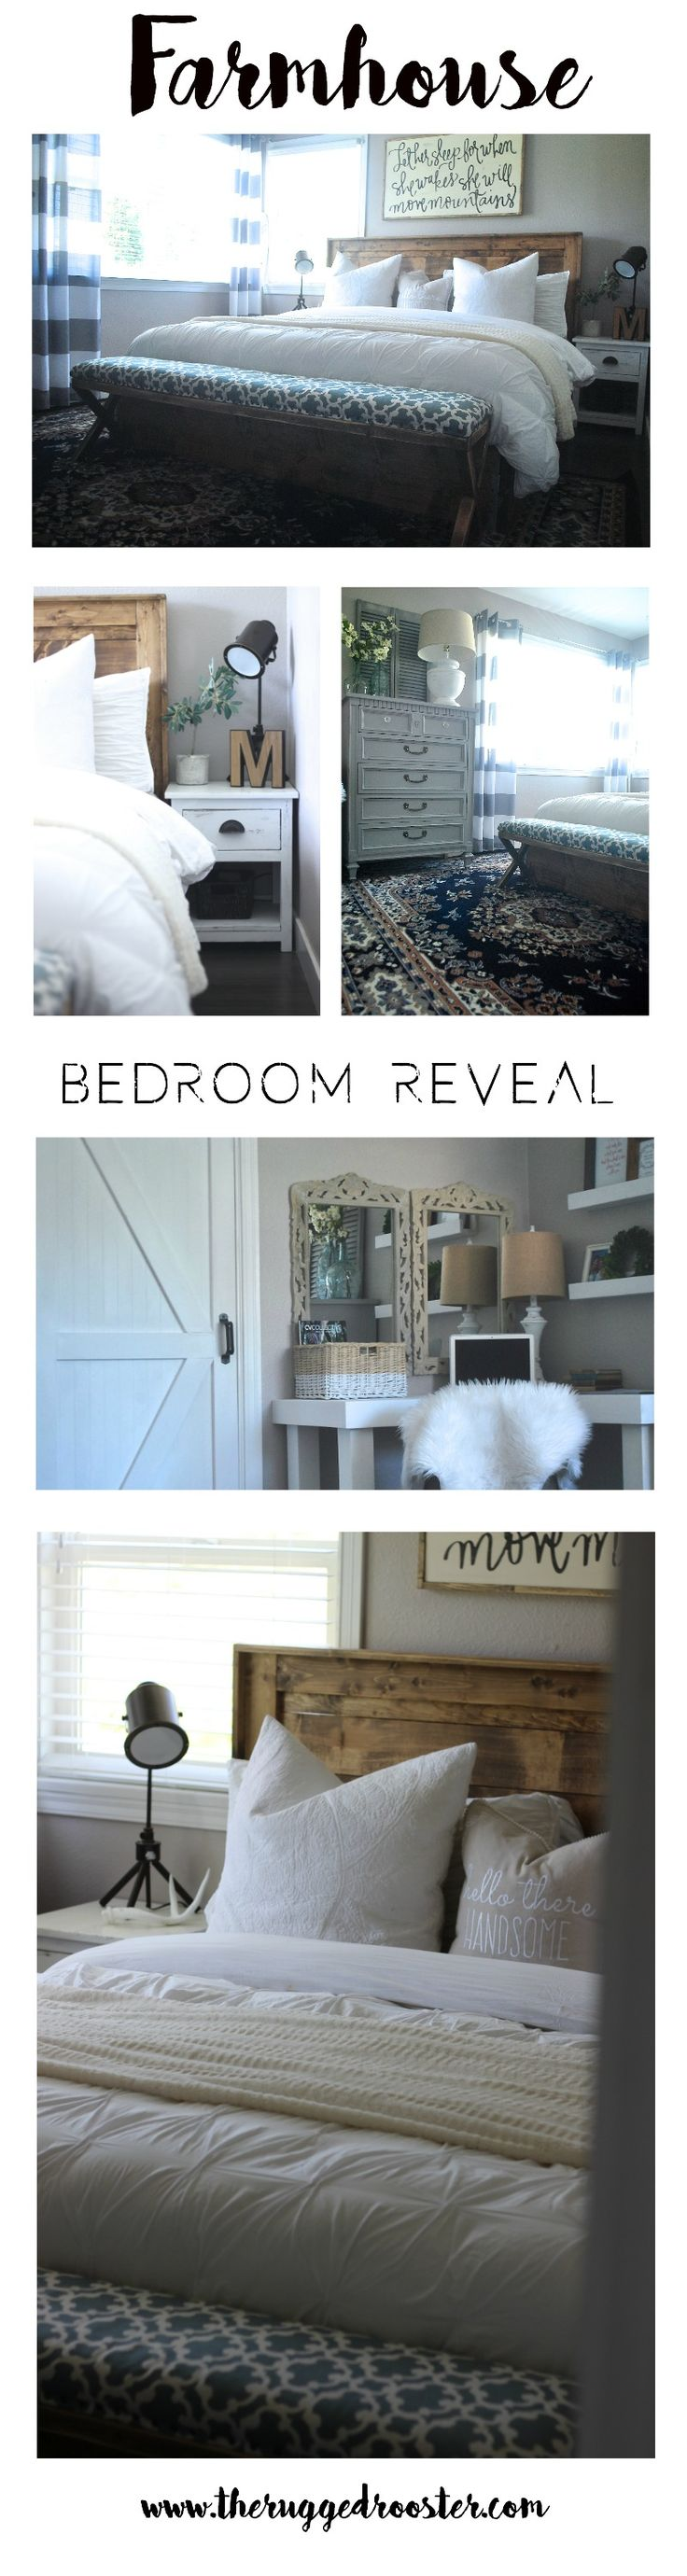 www.theruggedrooster.com/bedroom-reveal/ Our Farmhouse Bedroom Reveal. Tips & Tricks To style your Farmhouse Bedroom For Cheap. Build Your Own Rustic Furniture. Step By Step Tutorials and Easy DIY 's. Our Home Blog will teach you how to make a fixer upper home for pennies! #luckofthepin #farmhouse #fixerupper